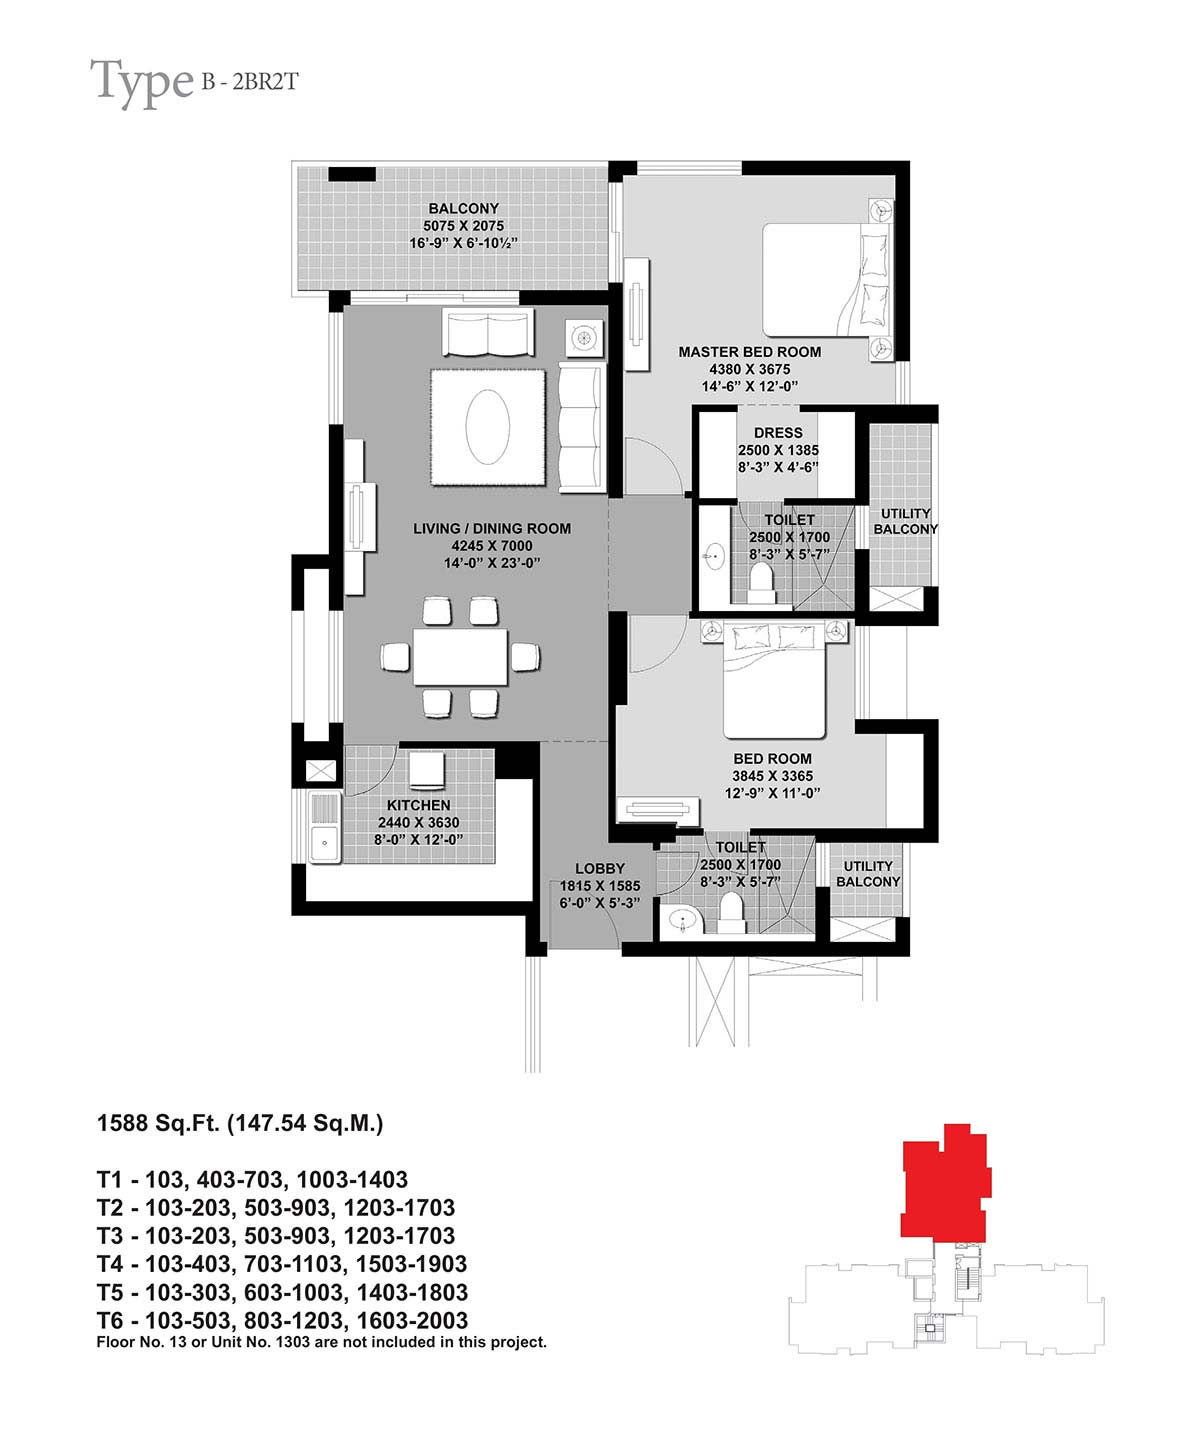 Floor Plan-2BR2T-1588 Sq.Ft.